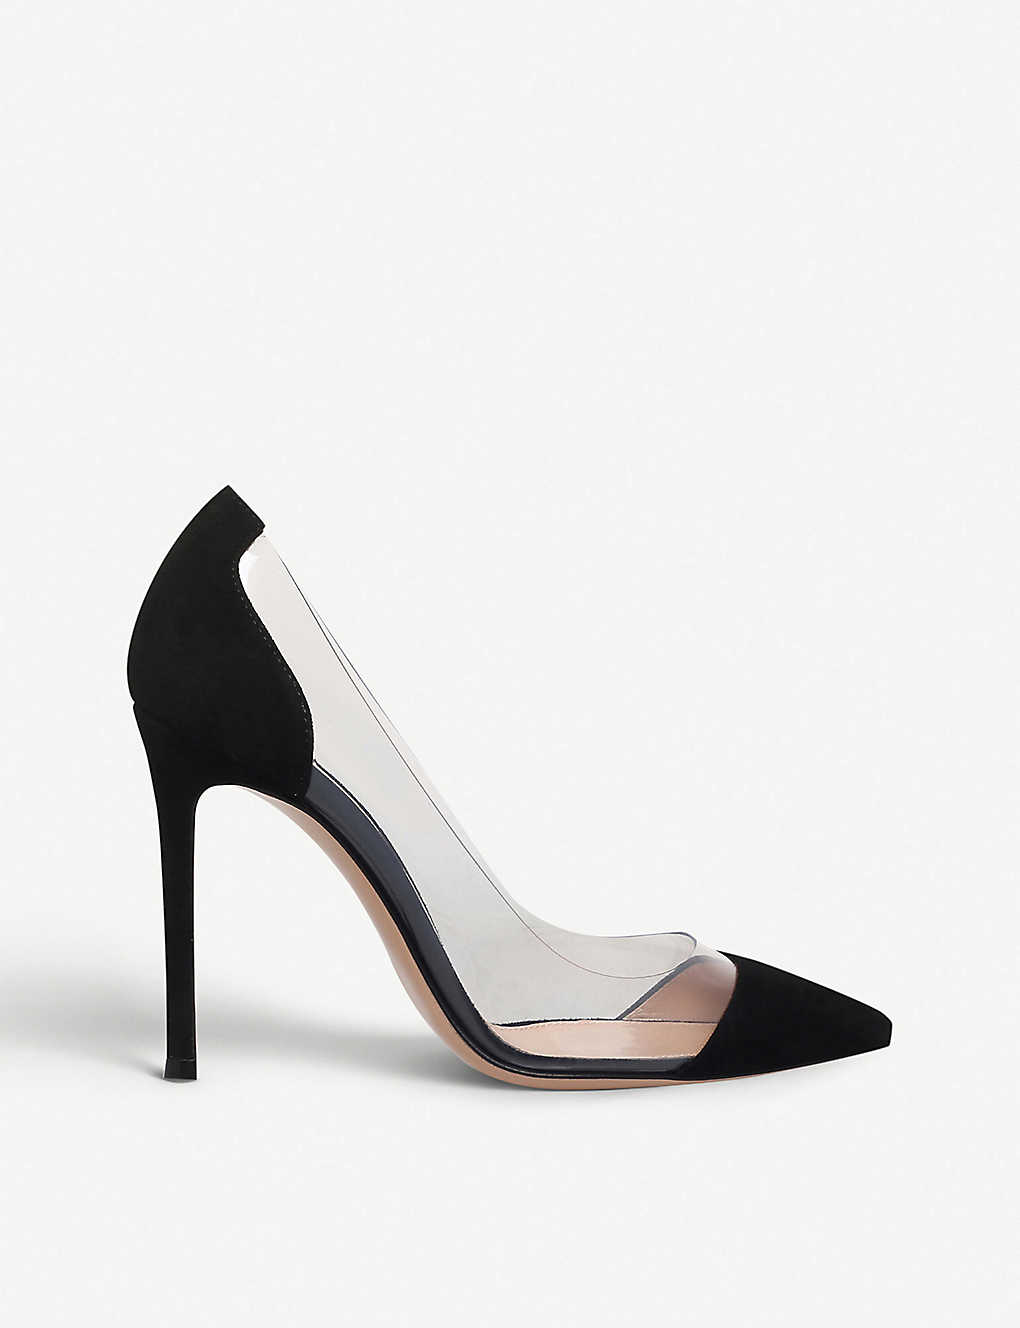 Gianvito Rossi Woman Anise Patent-leather And Pvc Slingback Pumps Baby Size 36 lIzRKoe